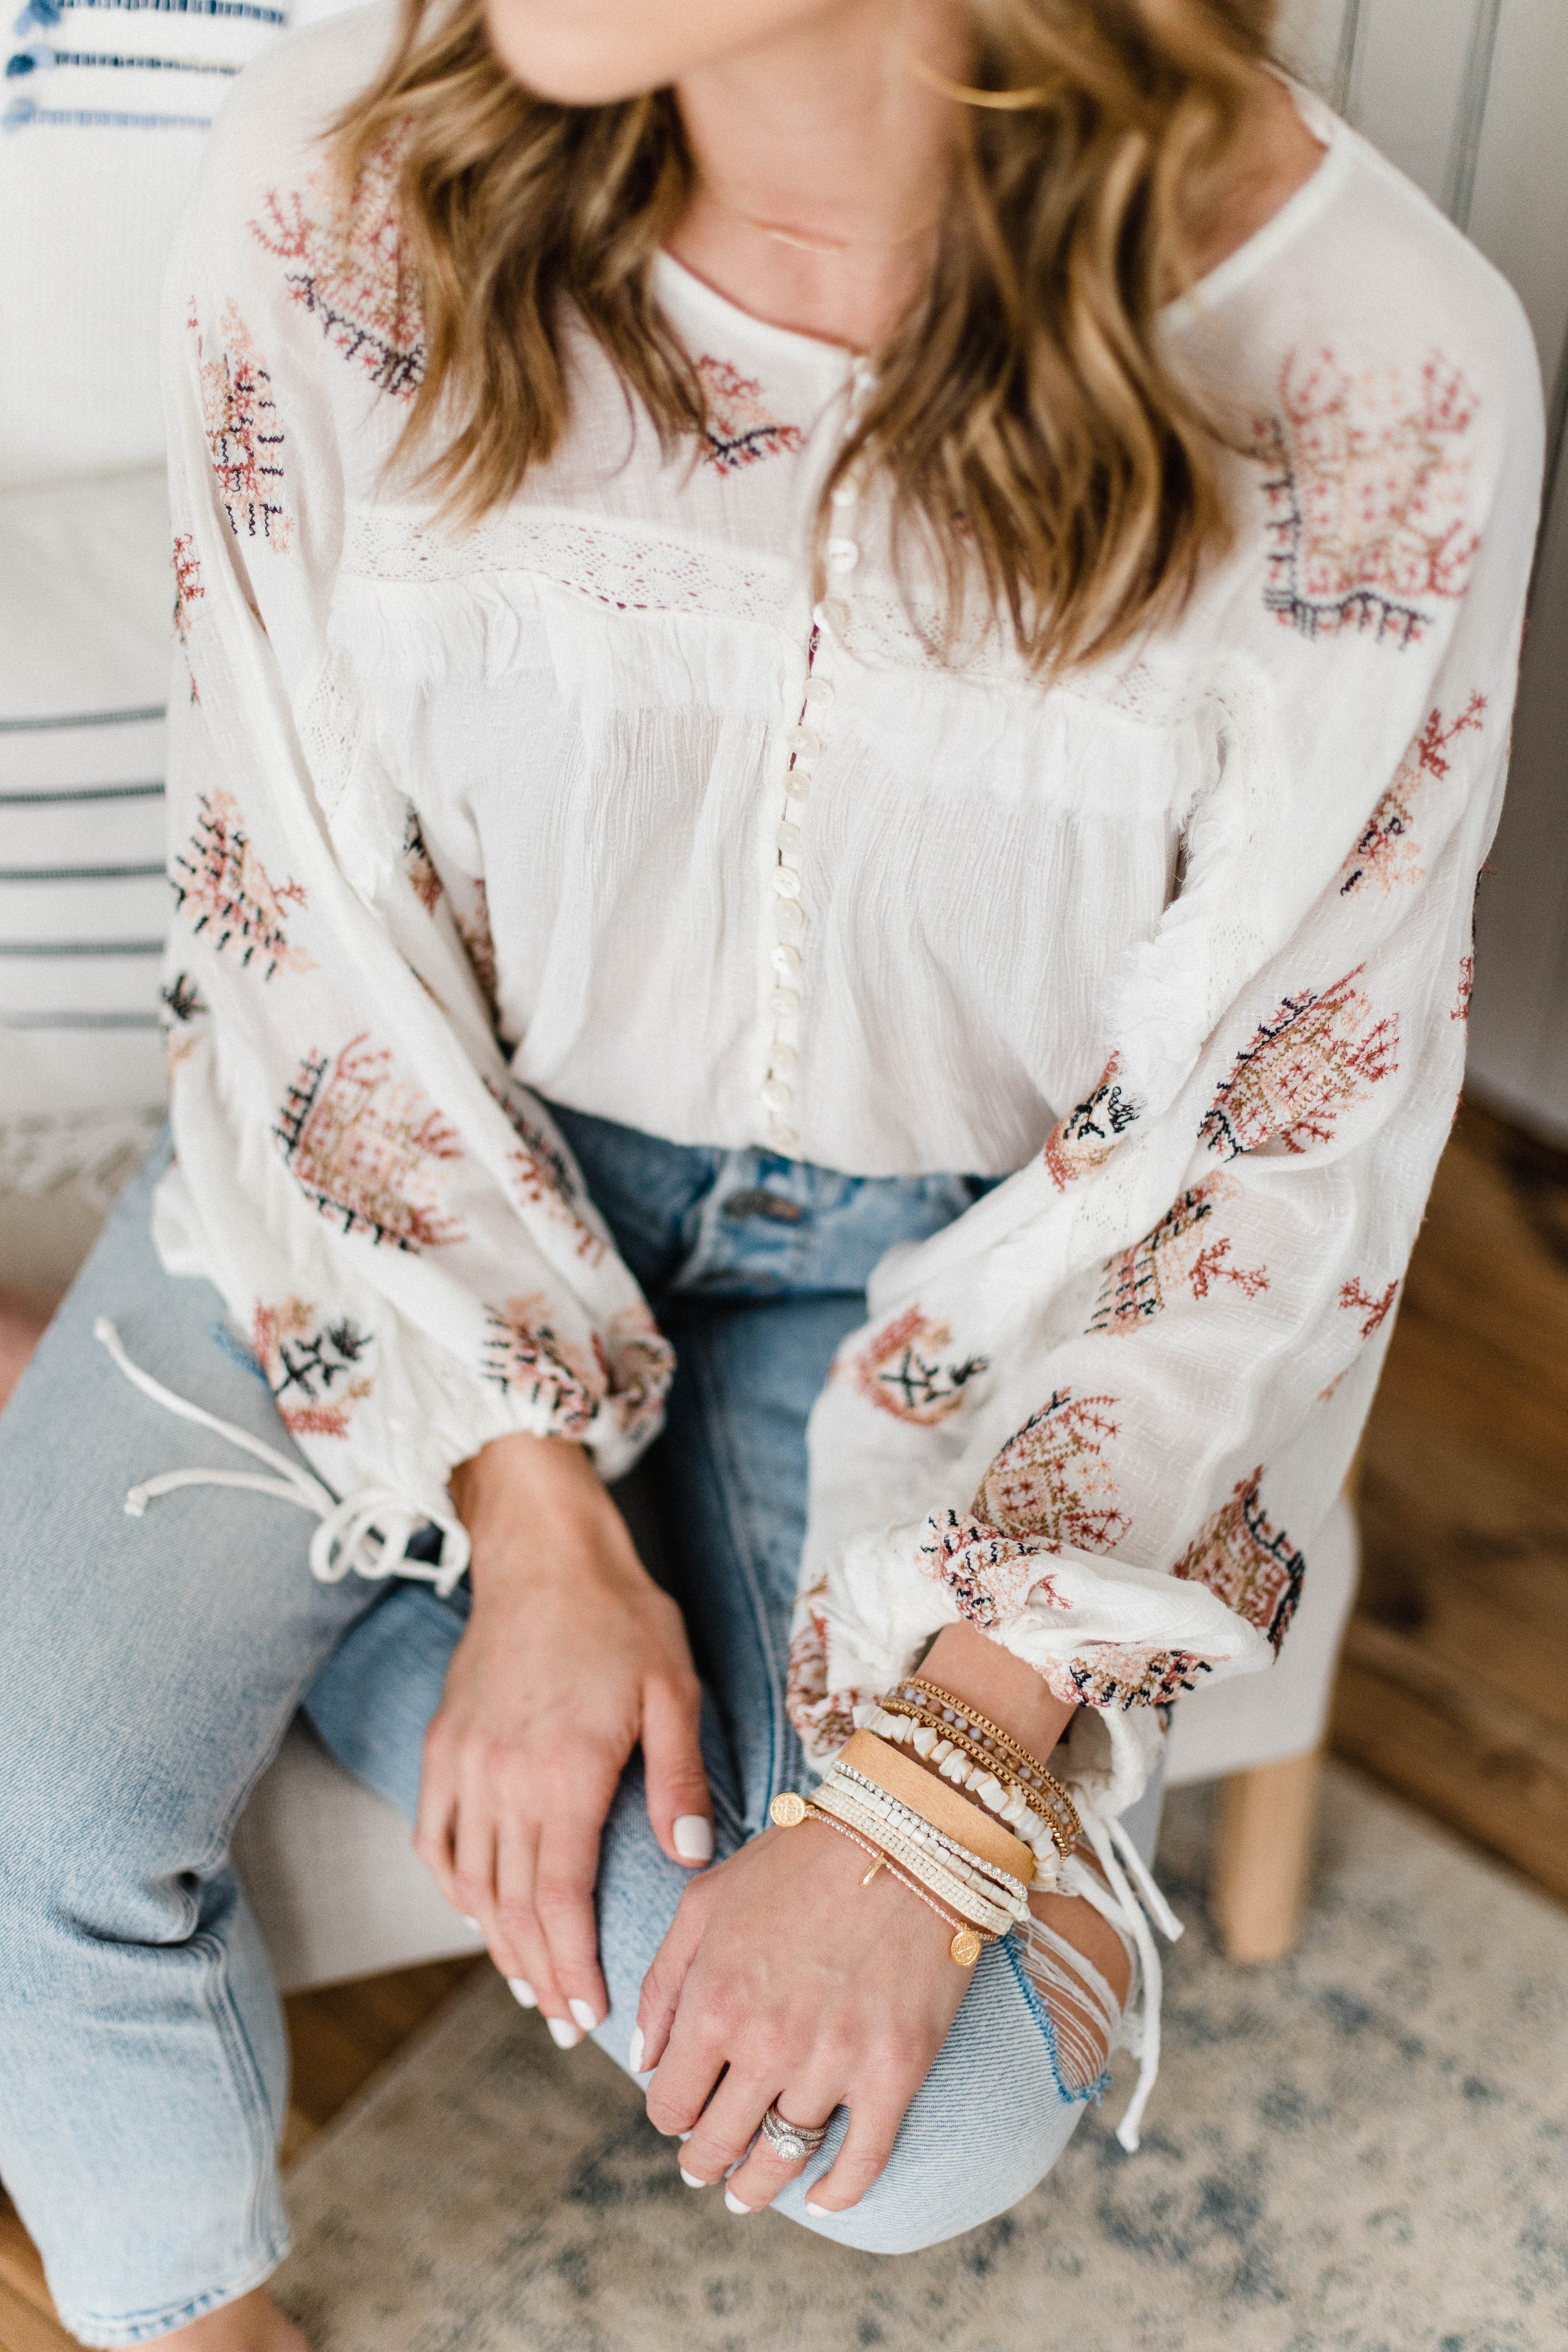 Connecticut life and style blogger Lauren McBride shares Victoria Emerson's Valentine's Day sale, including sale details and her picks.